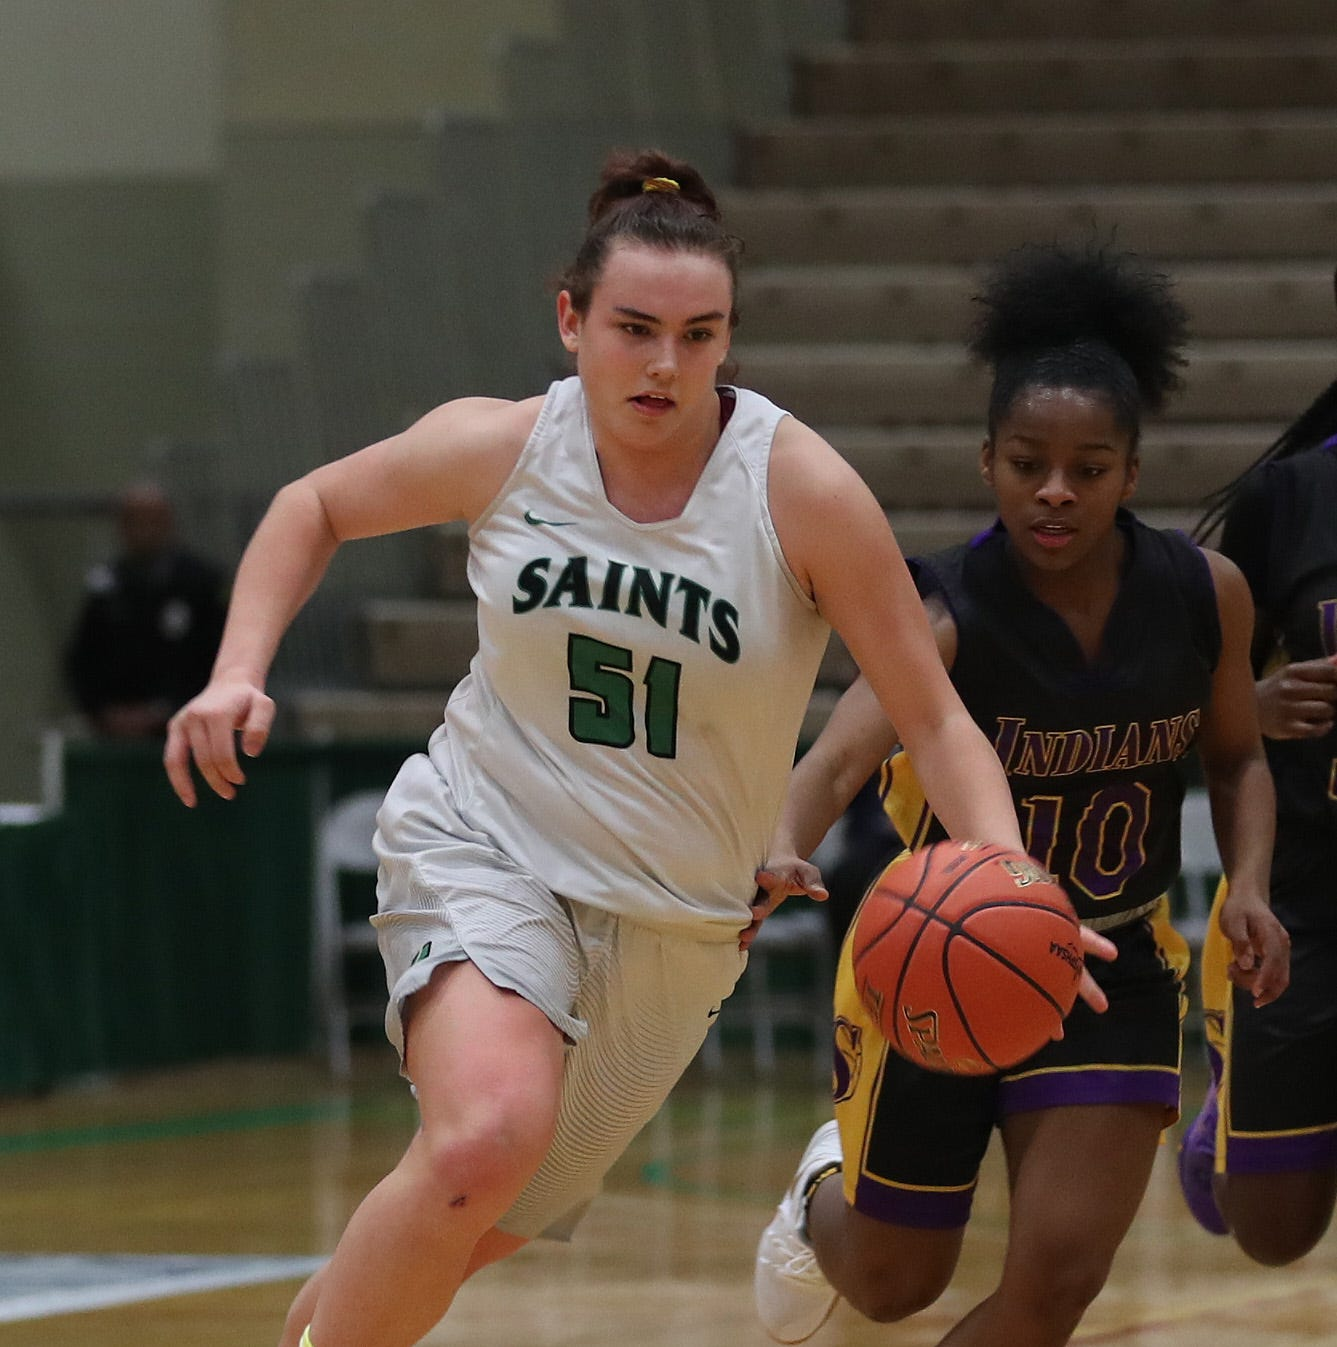 Girls Basketball: Seton Catholic Central's Hauer named co-Class A state Player of the Year